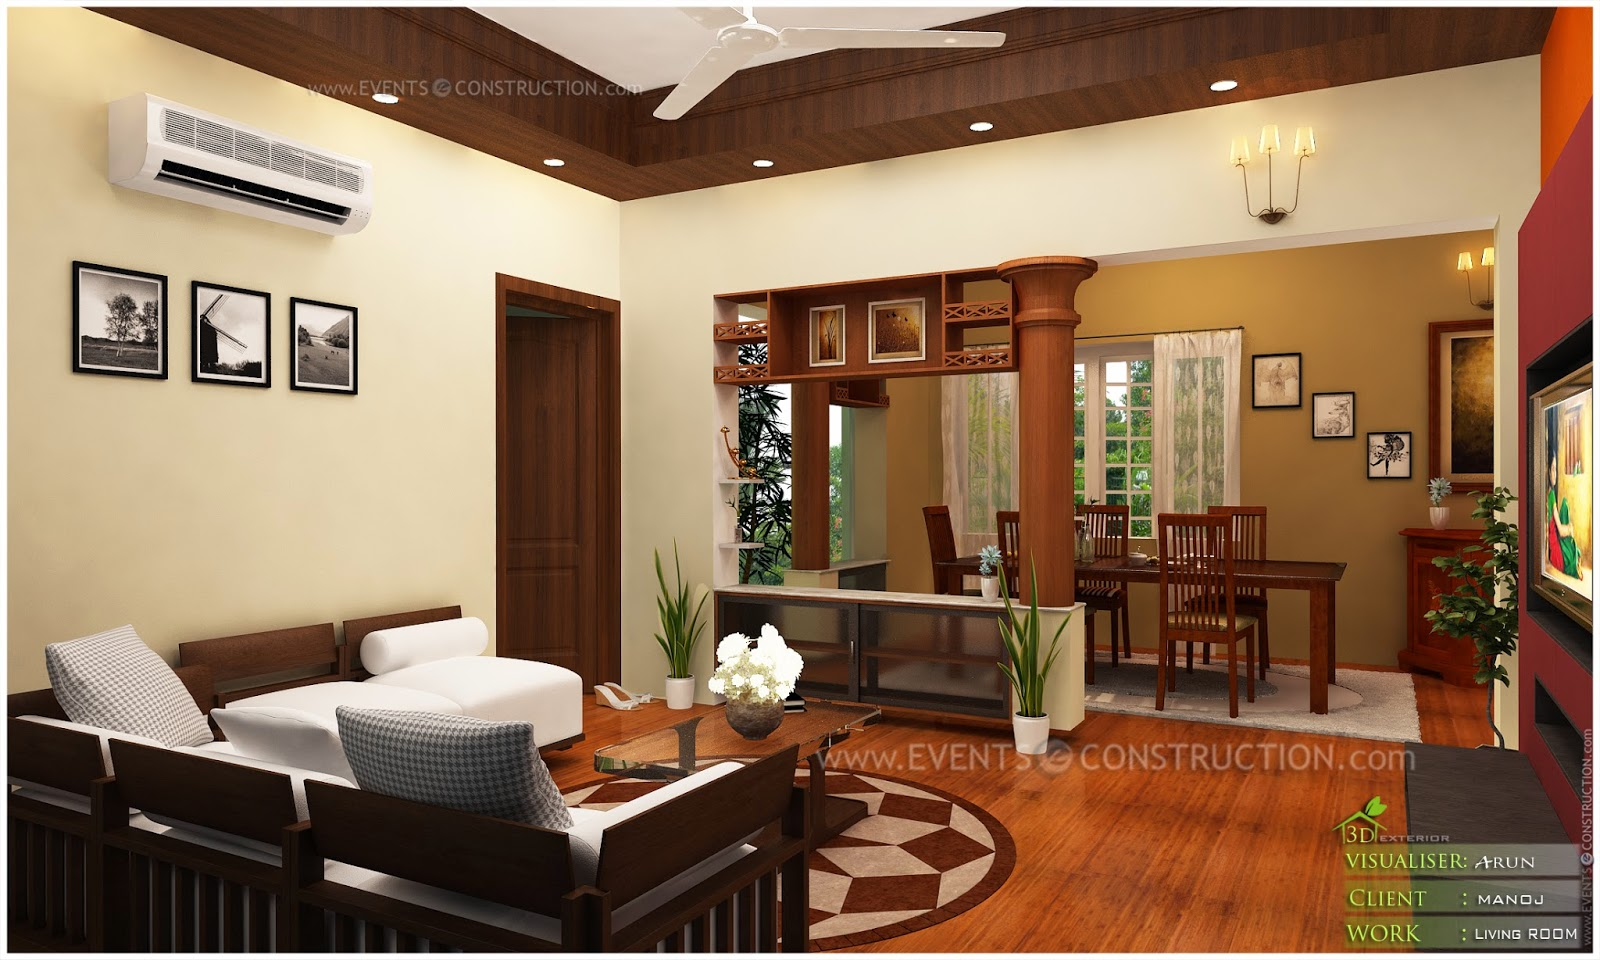 small living room designs kerala style white tile floors in interior design project designed for